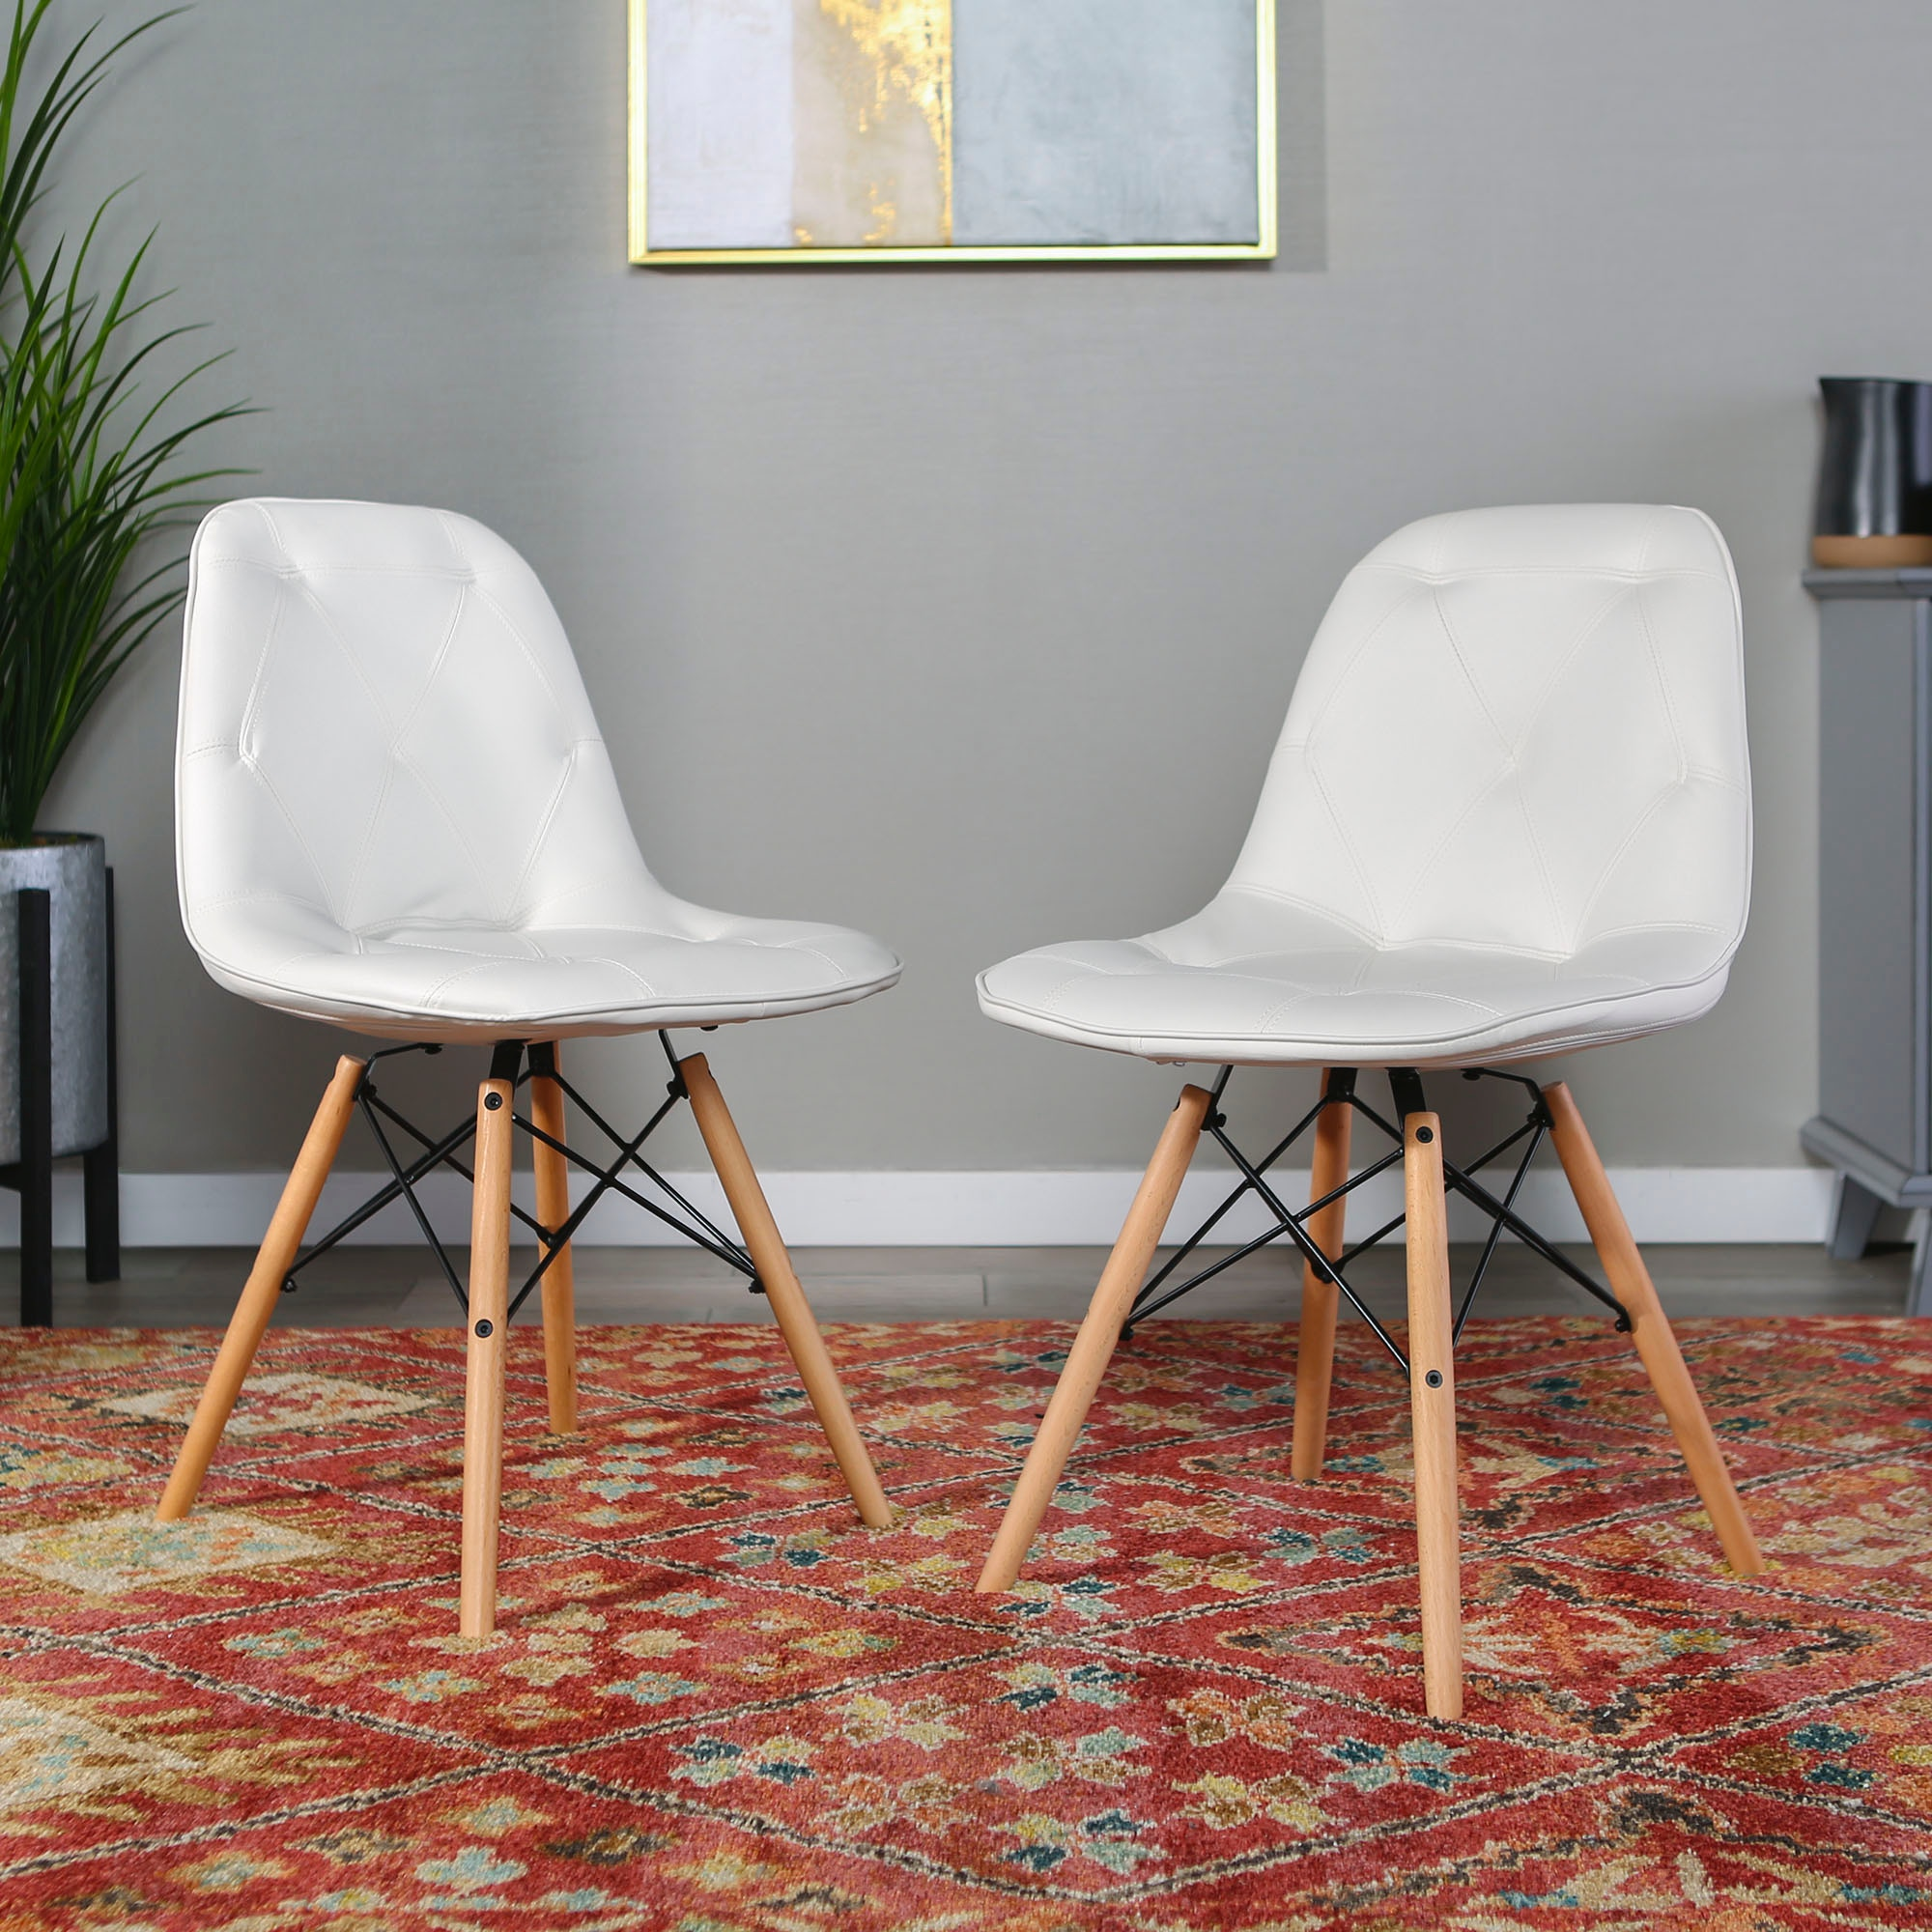 mid century modern kitchen chairs hotels with upholstered faux leather eames home office dining ft myers set of 2 white wedch18pu2wh